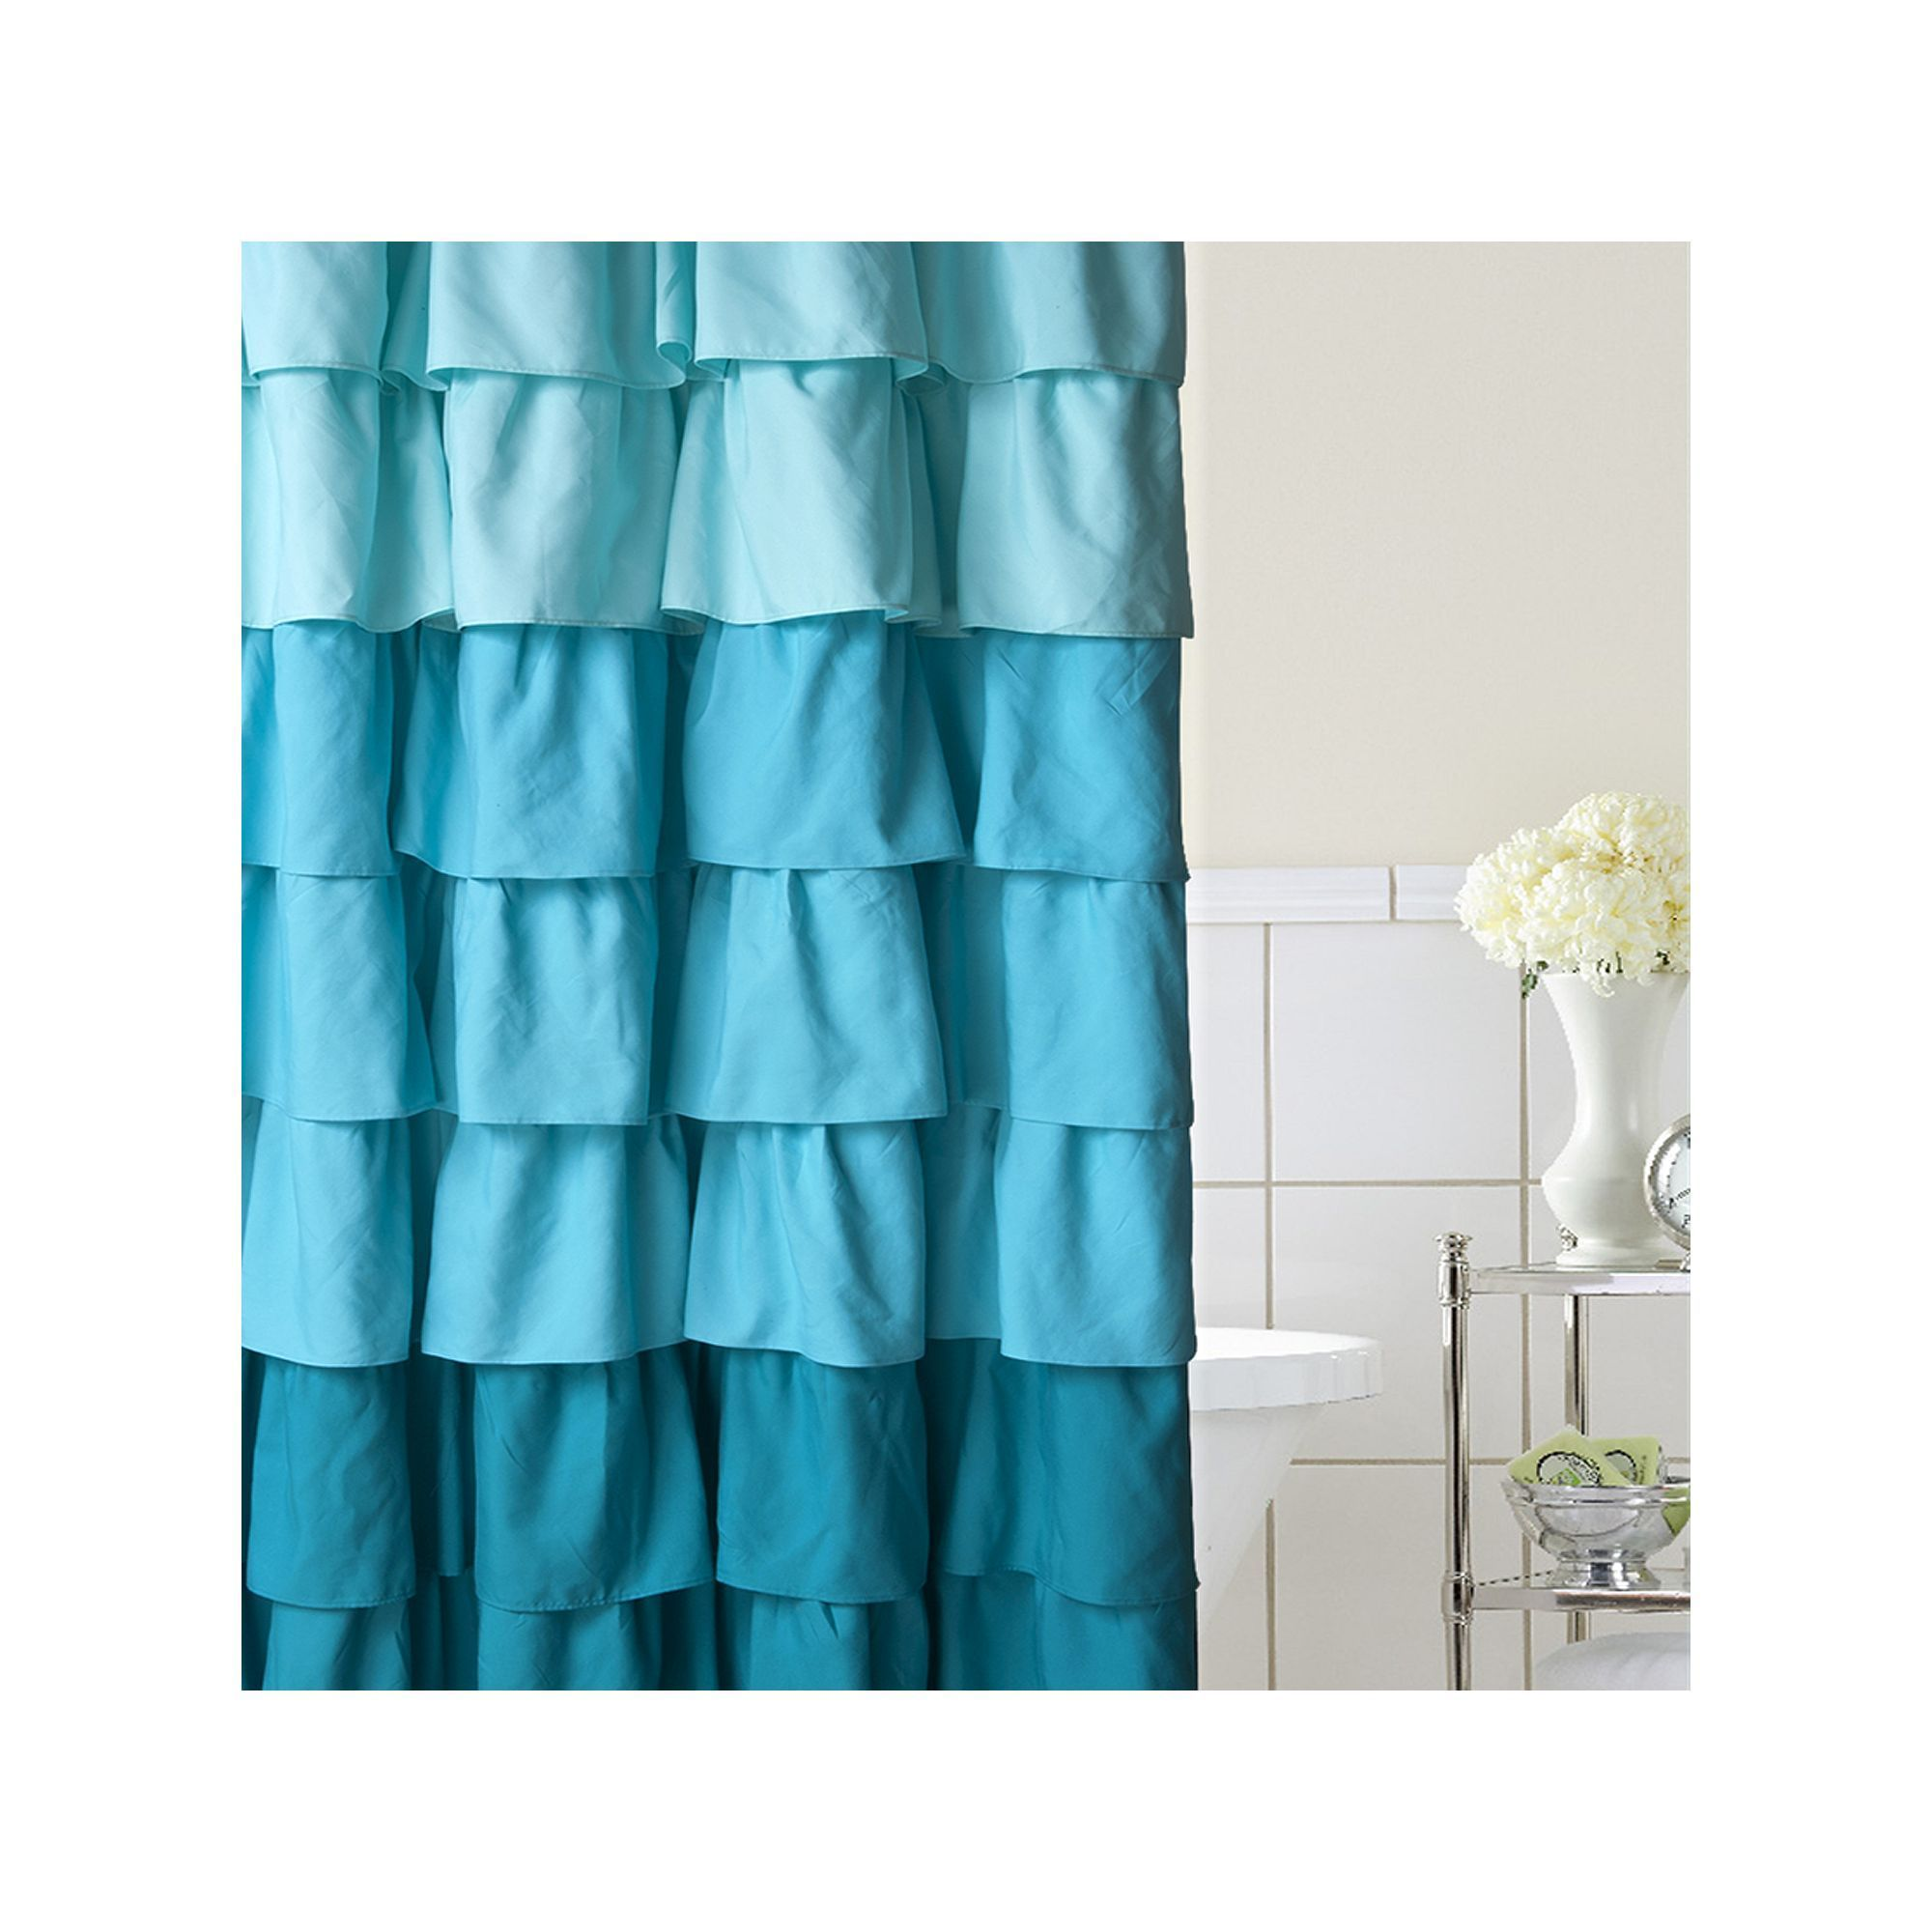 Home Classics® Ruffle Ombre Fabric Shower Curtain | Ombre fabric and ...